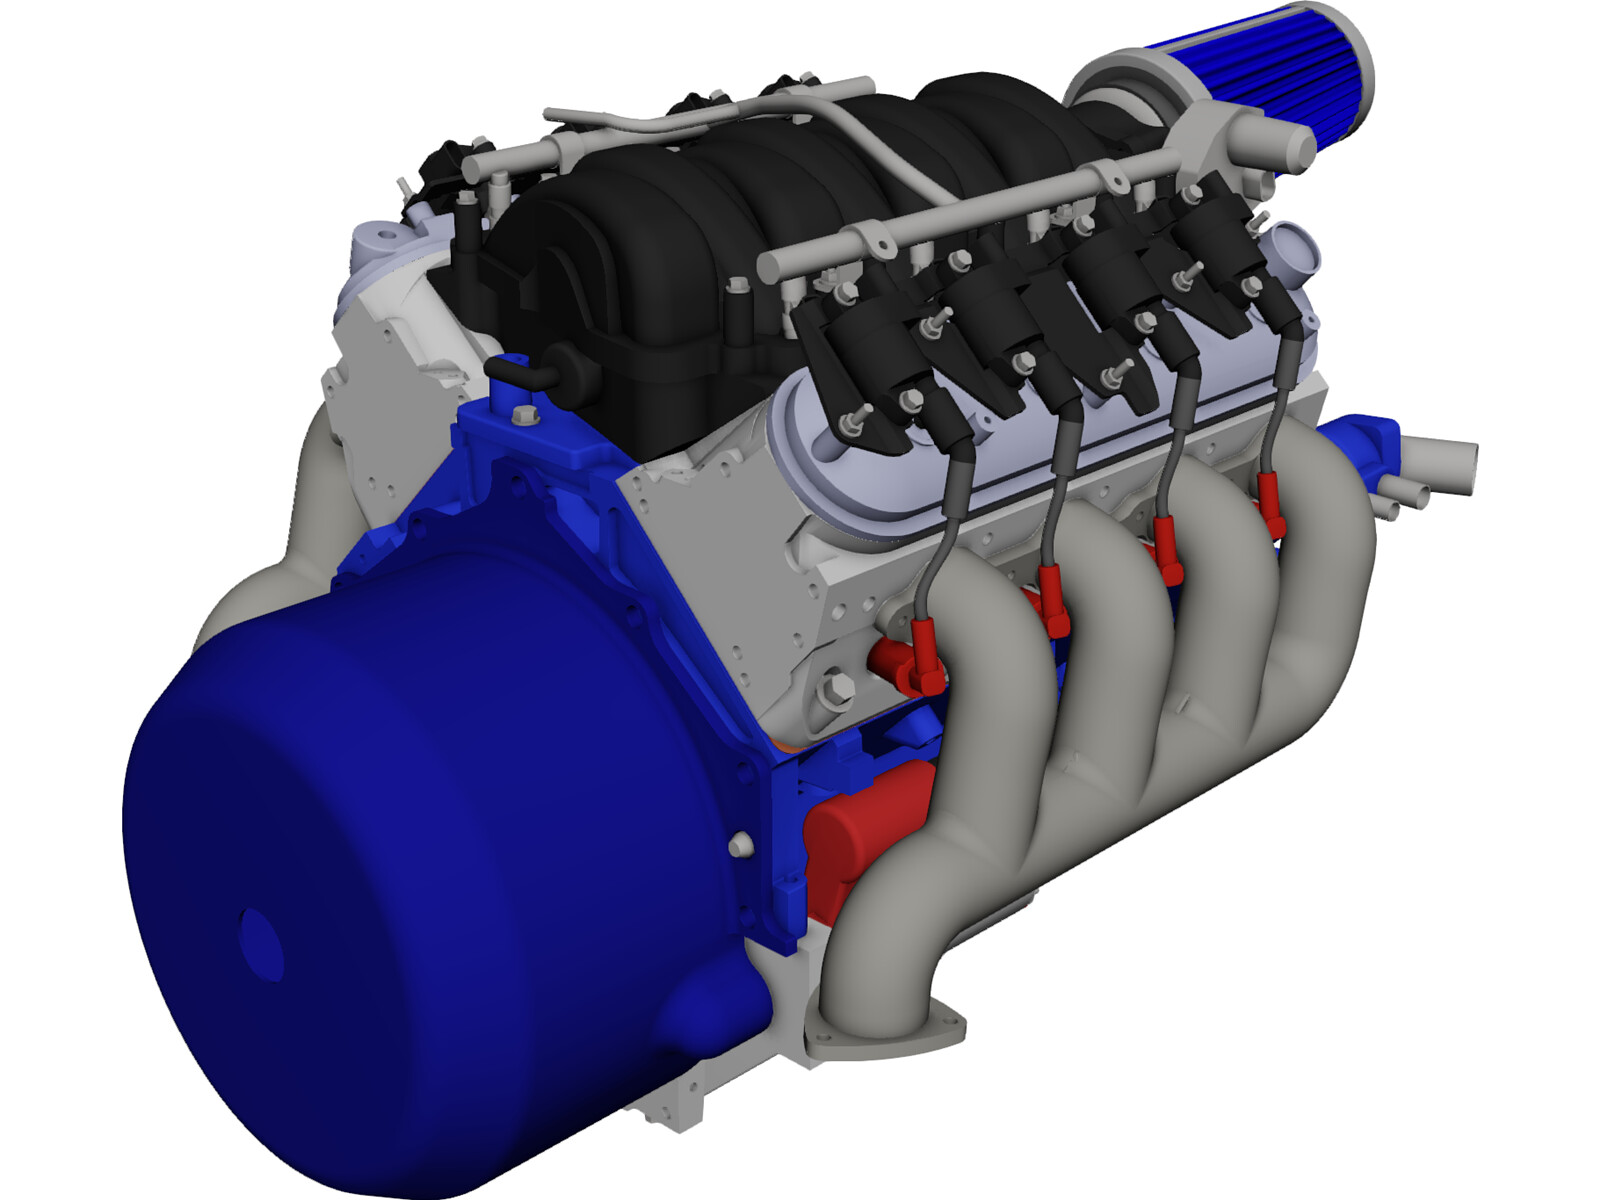 Chevrolet LS3 Engine Block 3D CAD Model